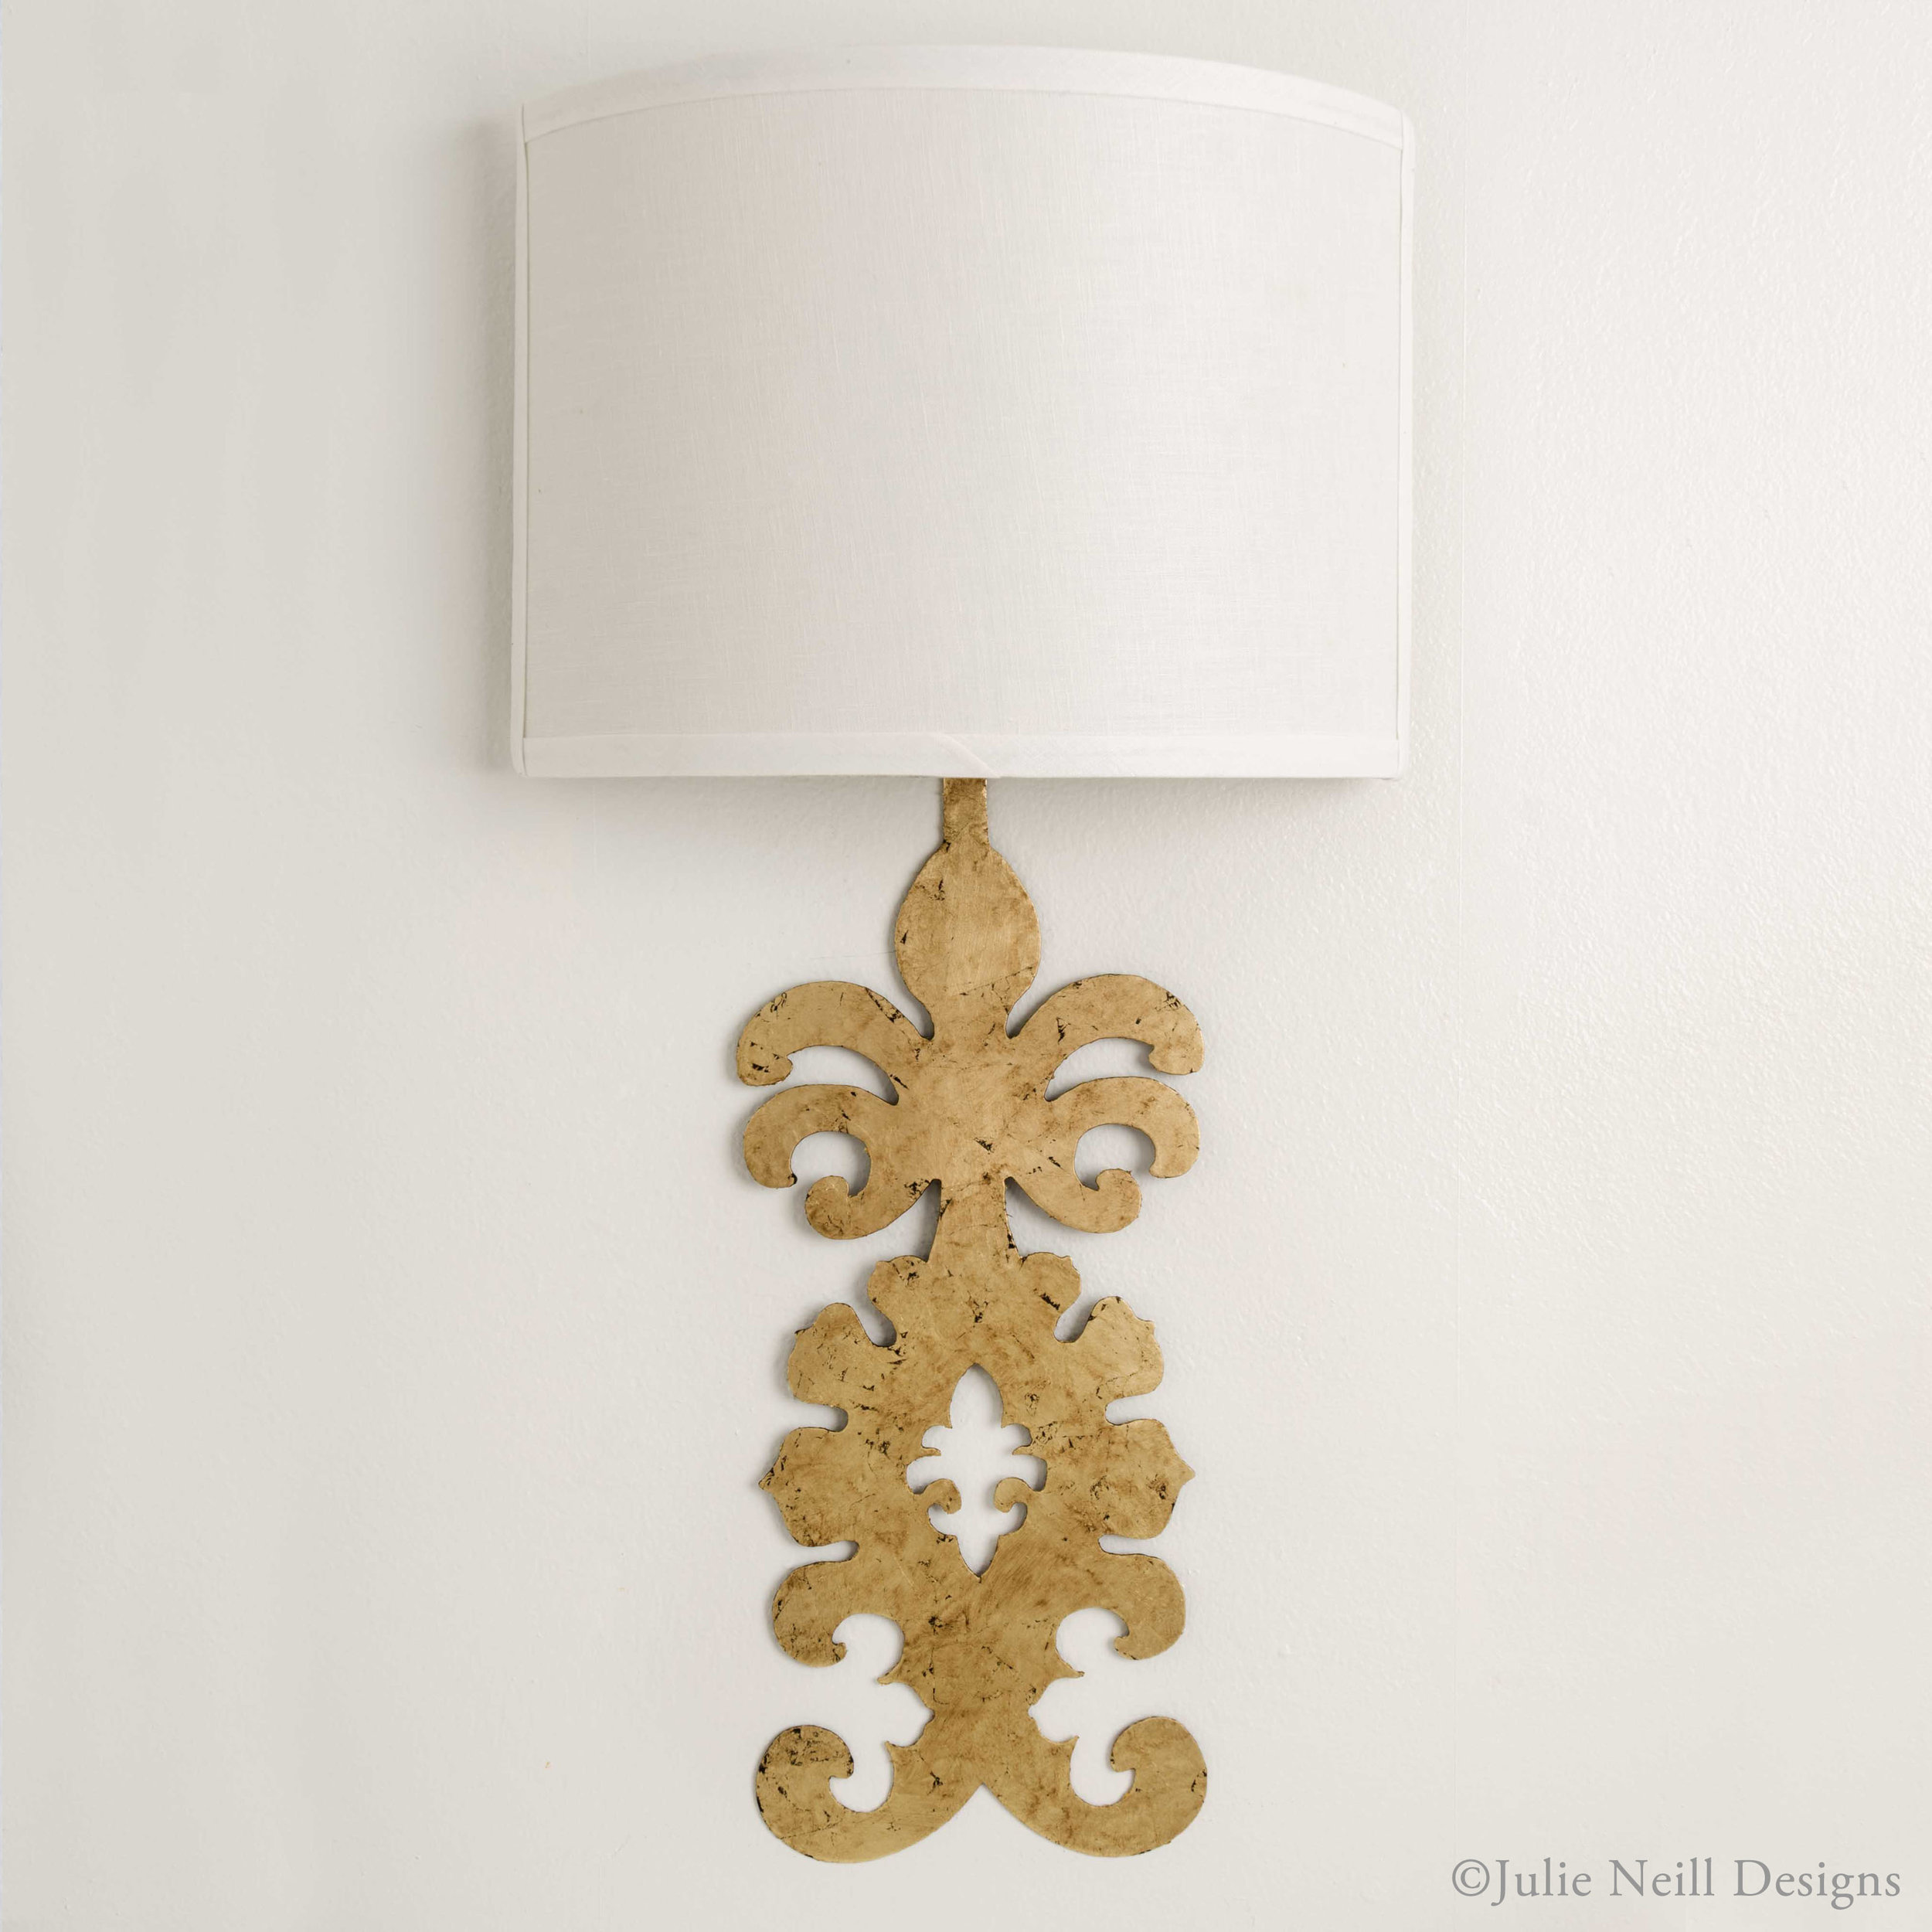 Meme_Sconce_JulieNeillDesigns